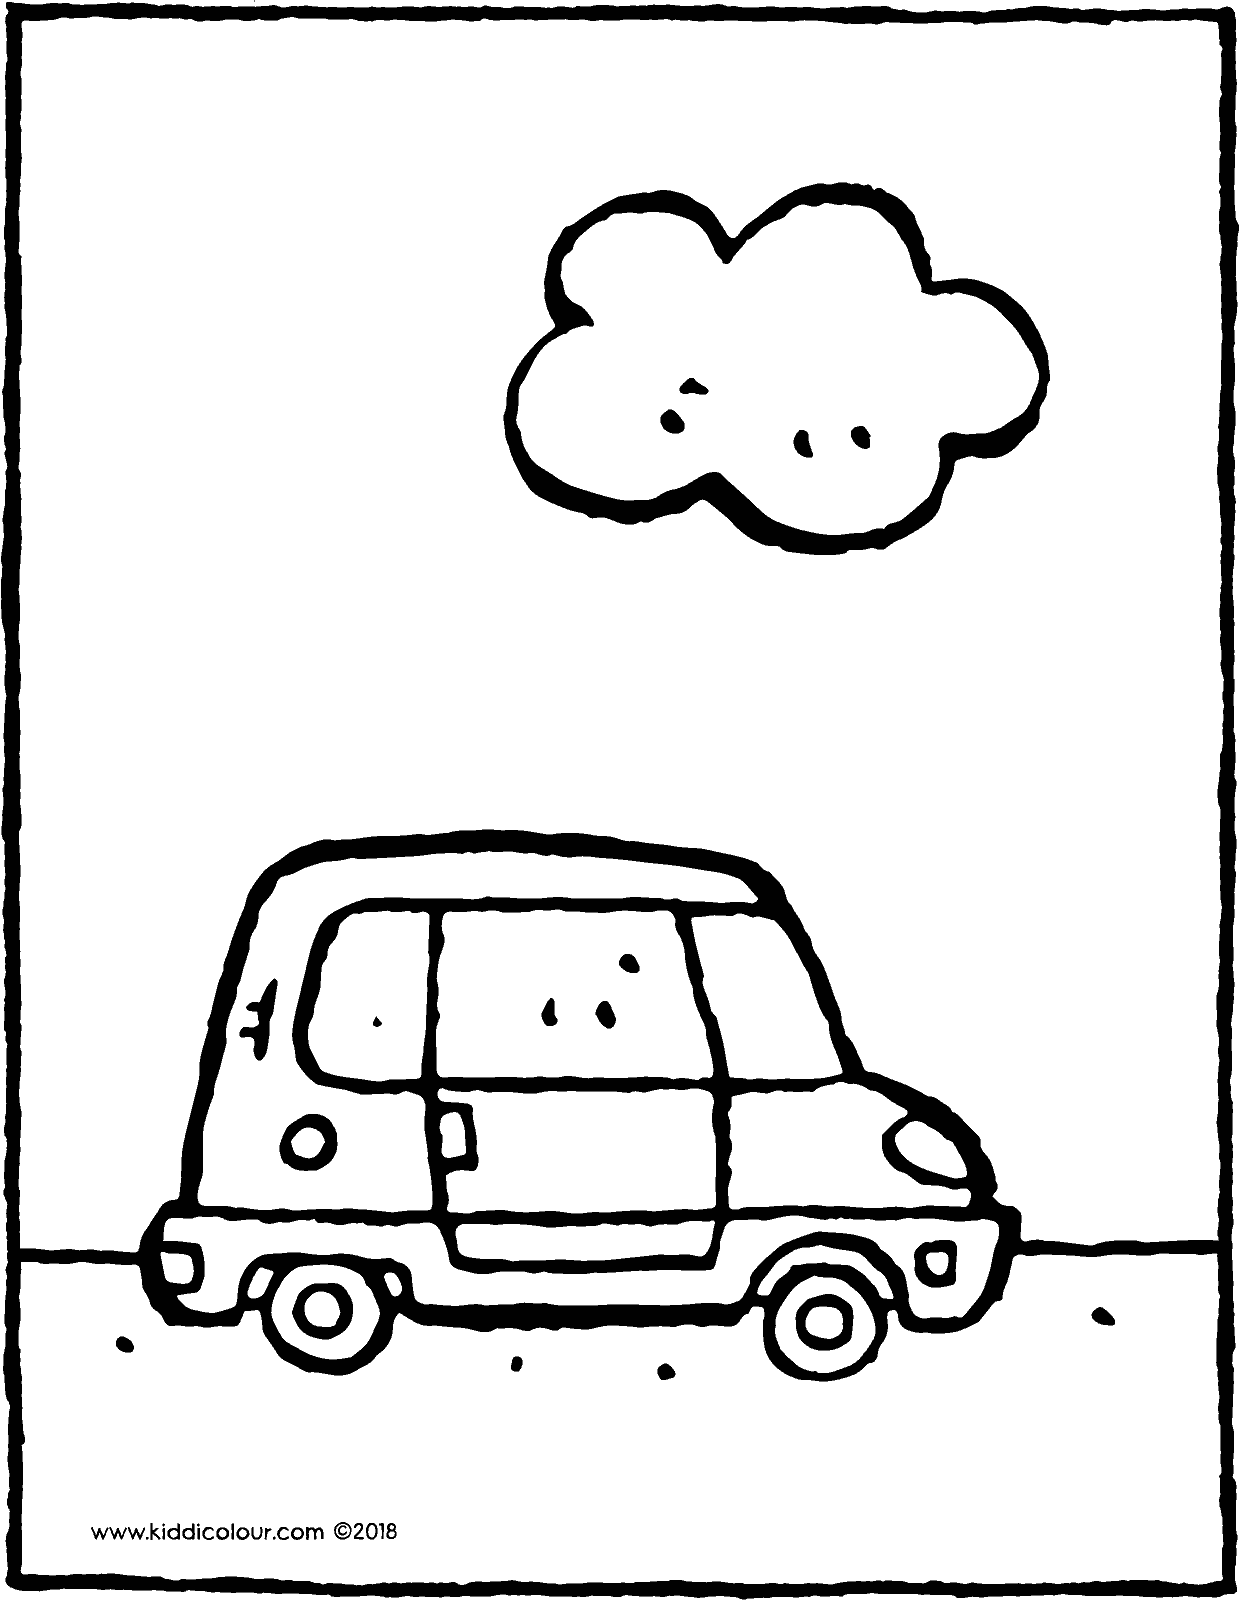 small car with cloud colouring page drawing picture 01V